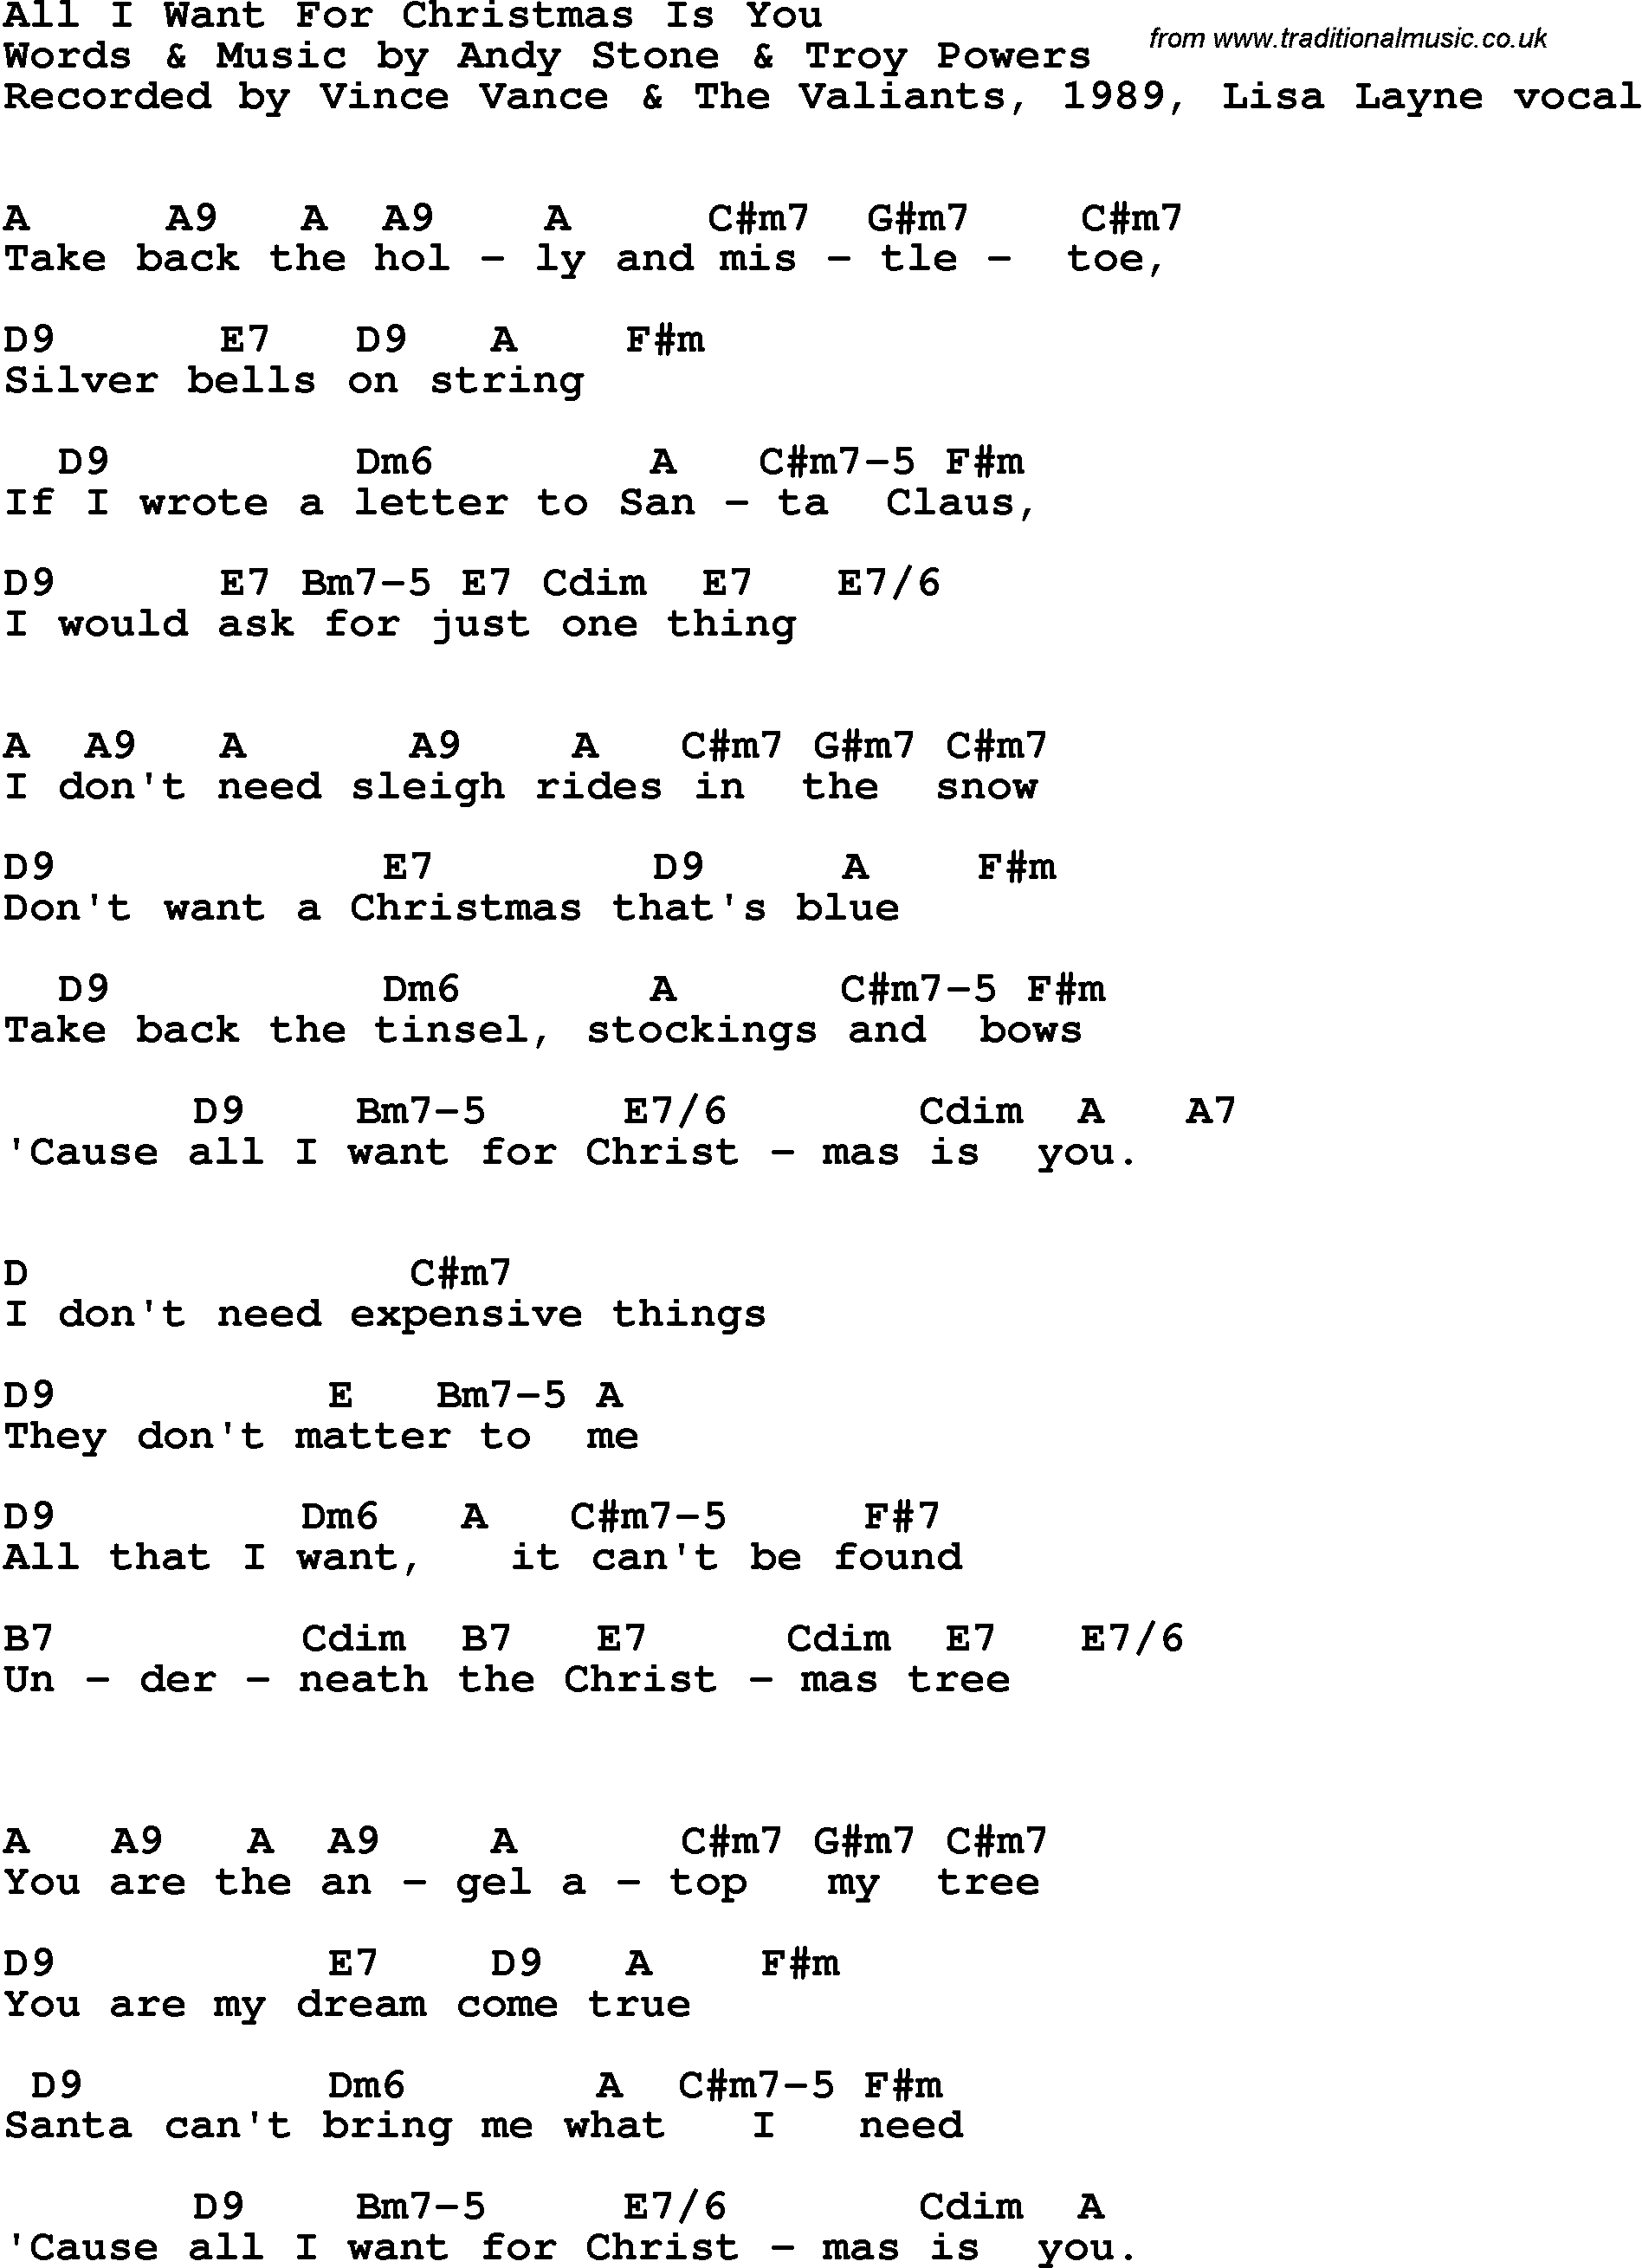 Lyrics All I Want For Christmas.Song Lyrics With Guitar Chords For All I Want For Christmas